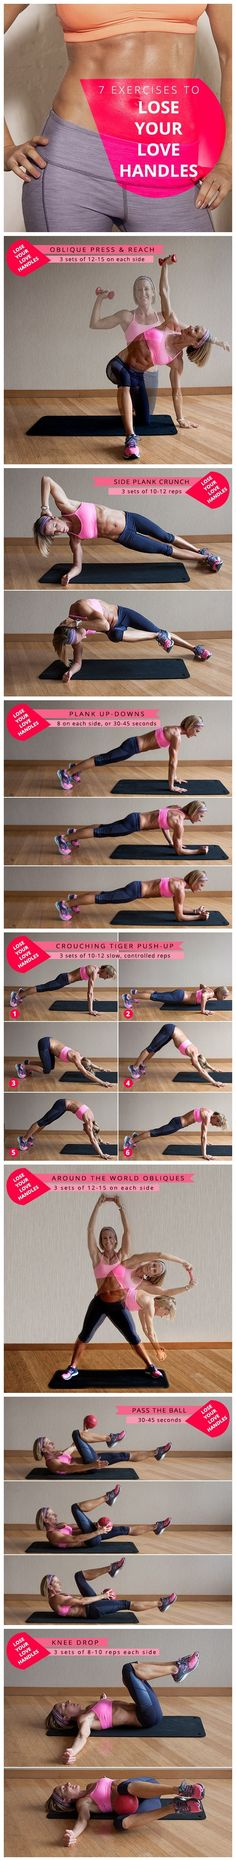 How To Lose Love Handles #weightloss